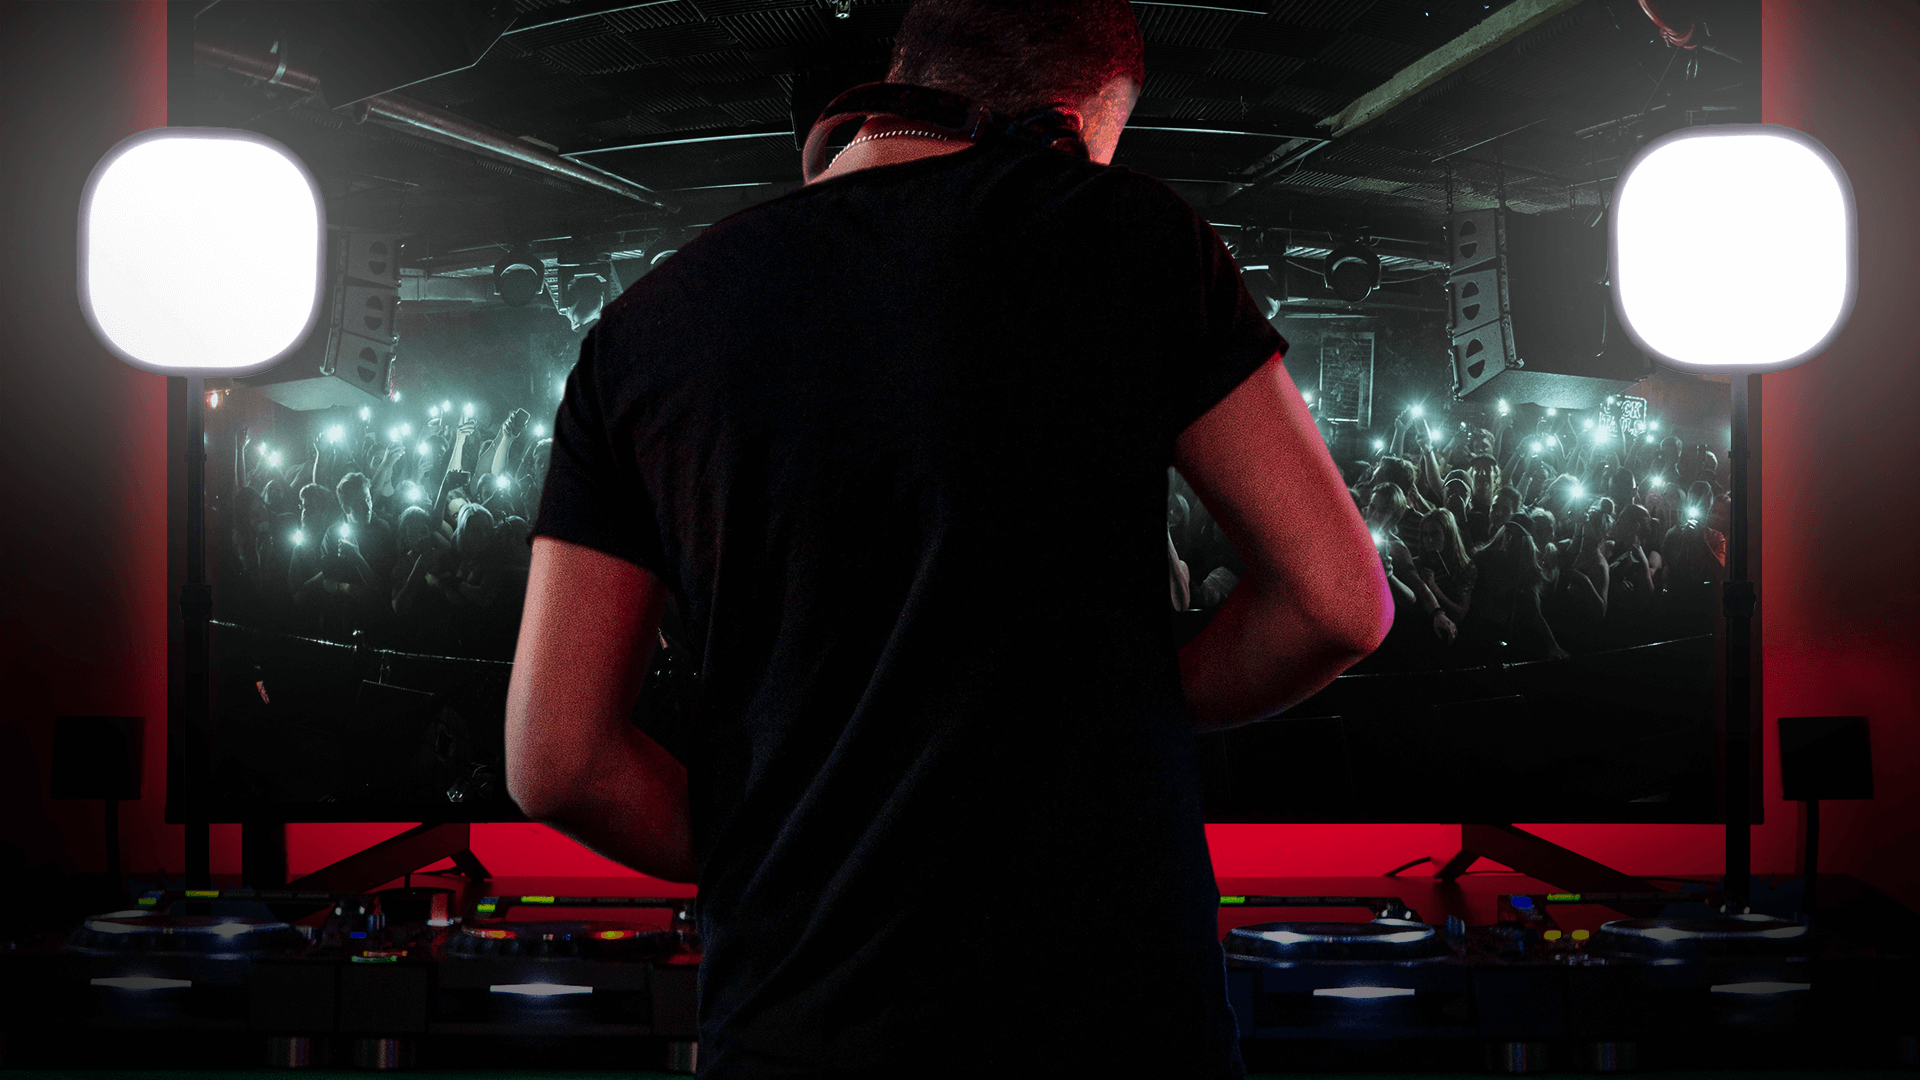 Back profile of DJ standing in front of monitor showing crowd